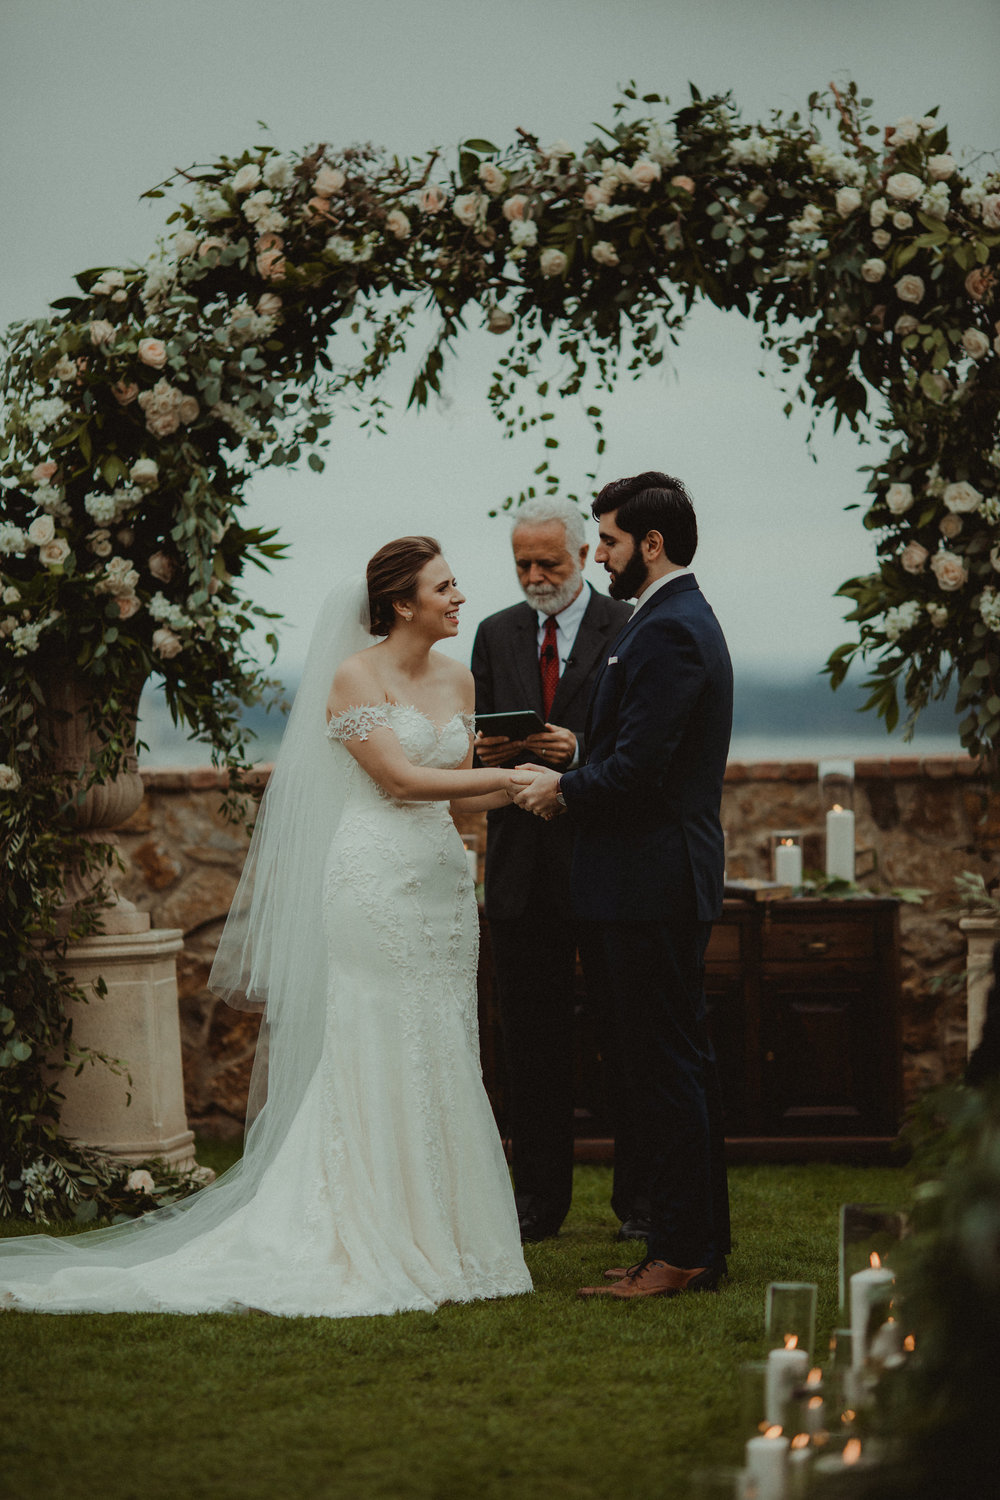 The promise of marriage in witness of their family and friends